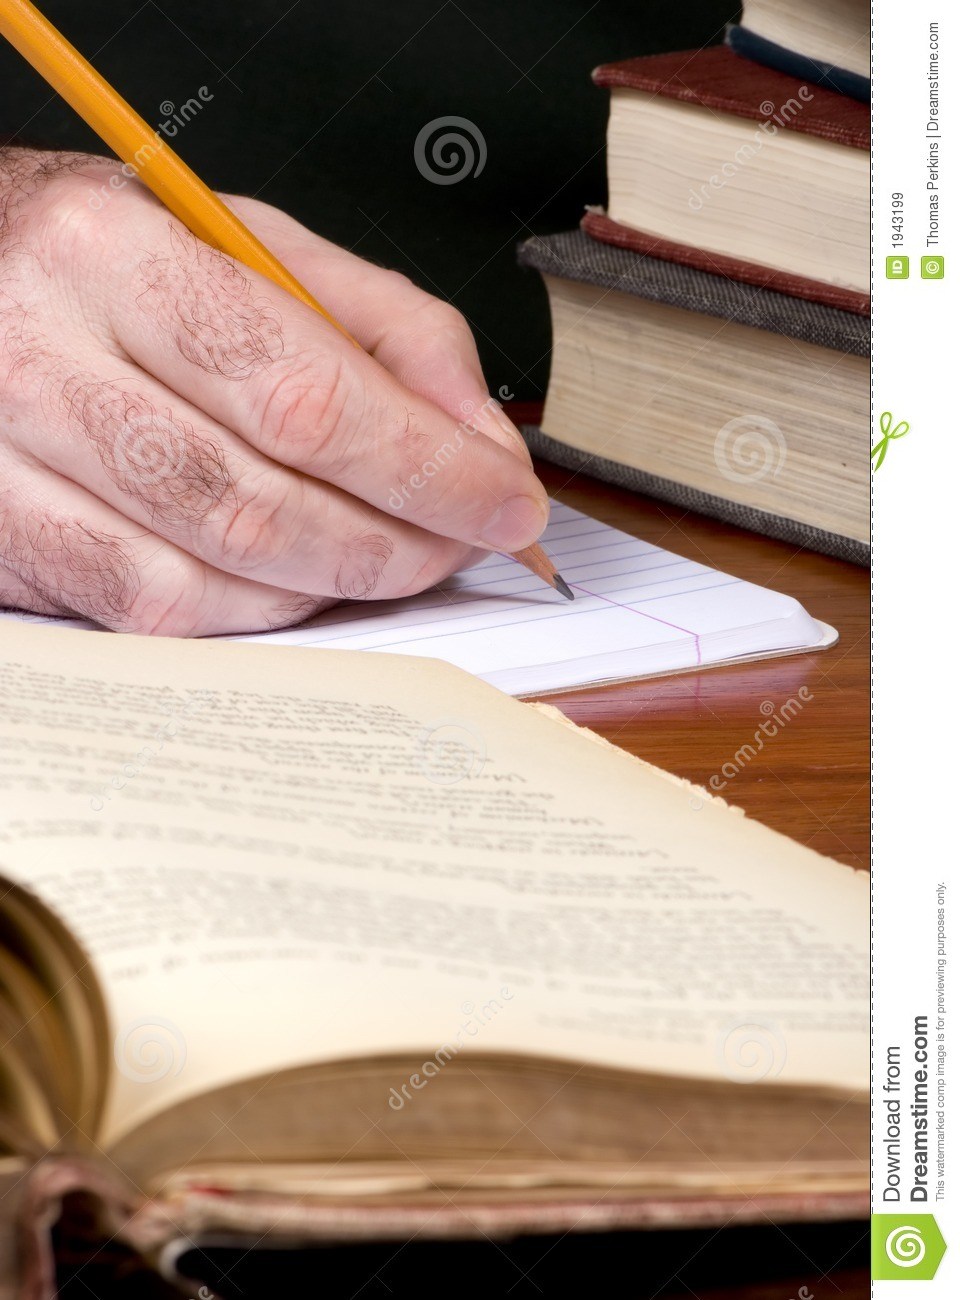 List Of Top 10 Topics For A Research Paper On The History Of Photography